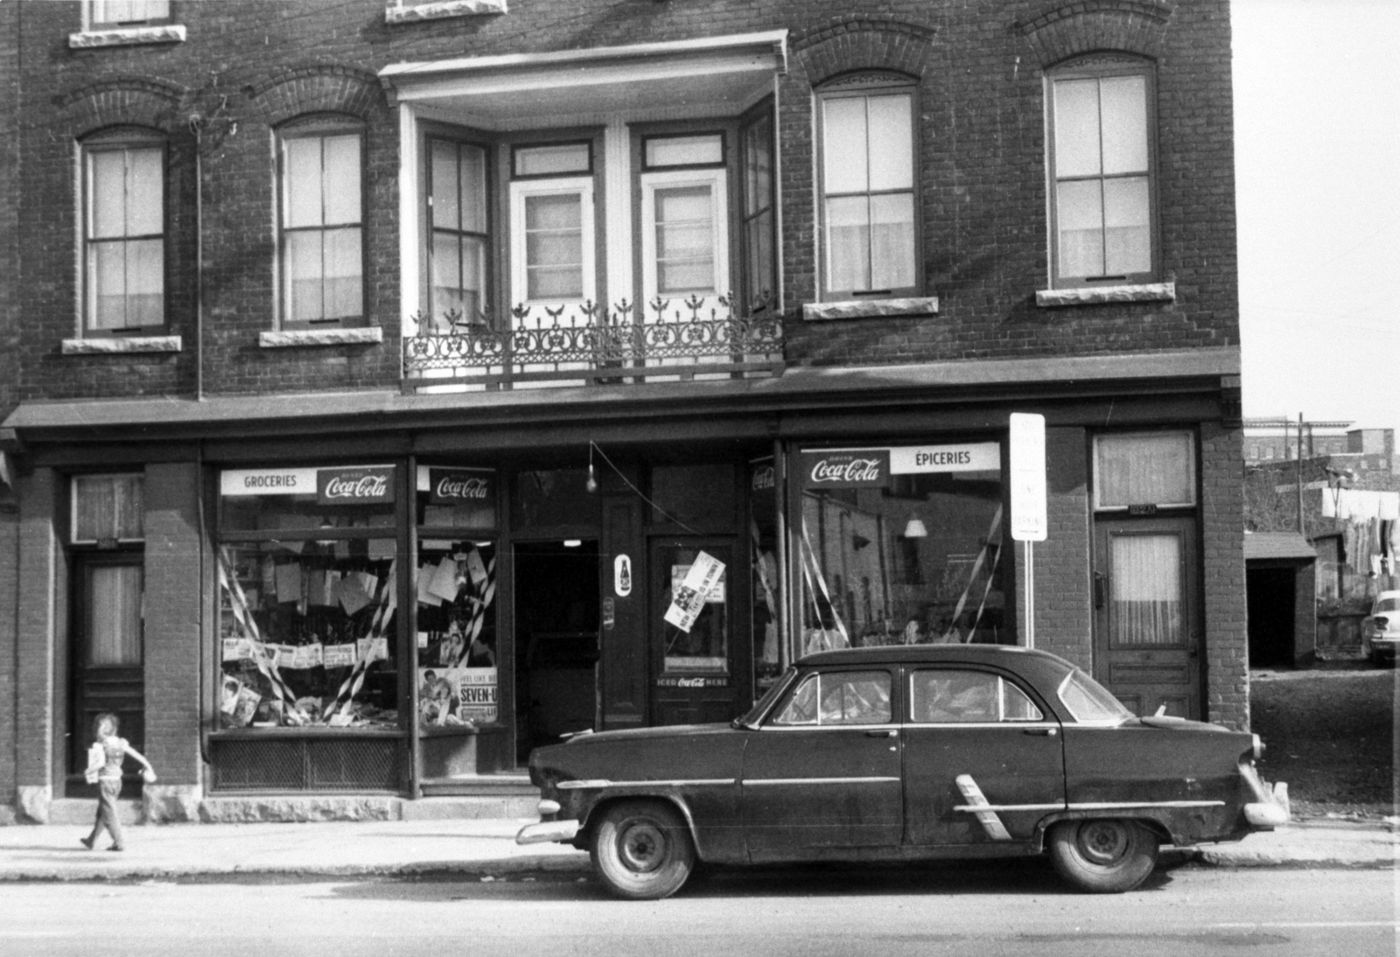 Black and white photograph of a young boy walking in front of a multi-storey brick house, with a grocery store on the ground floor. The signs are bilingual. A car is parked in front of the shop.